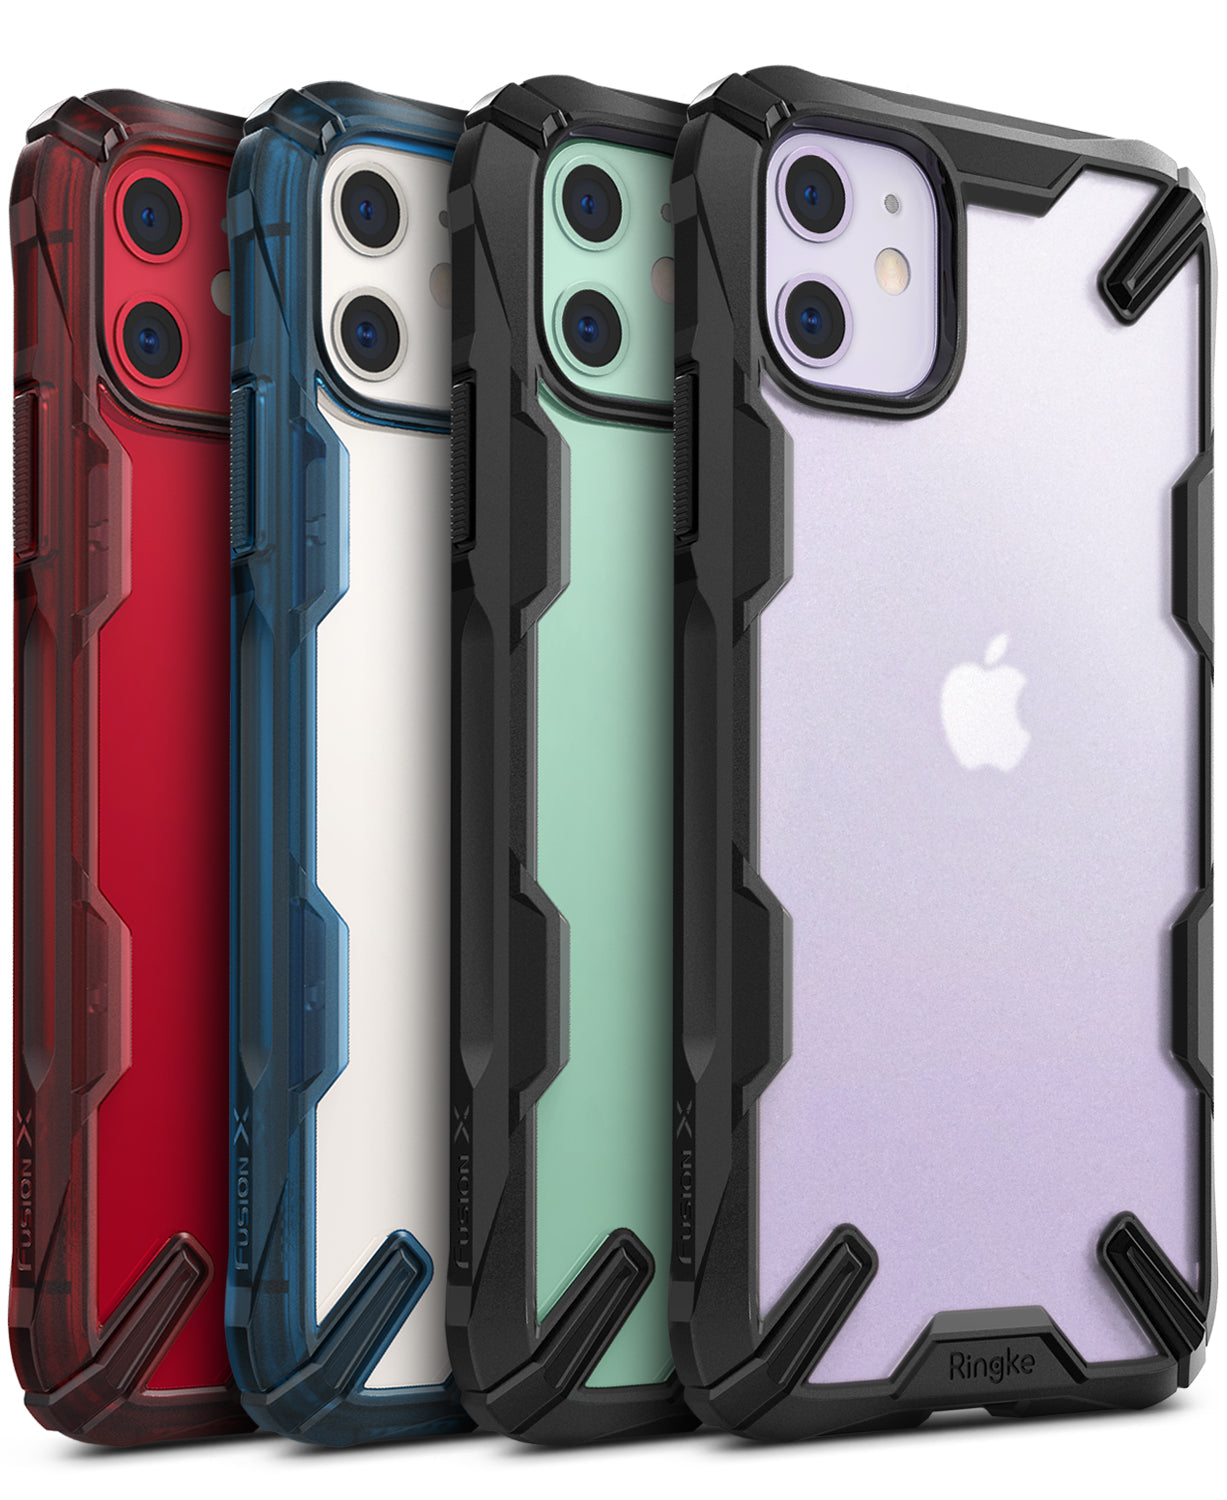 Ringke Fusion-X designed for iPhone 11